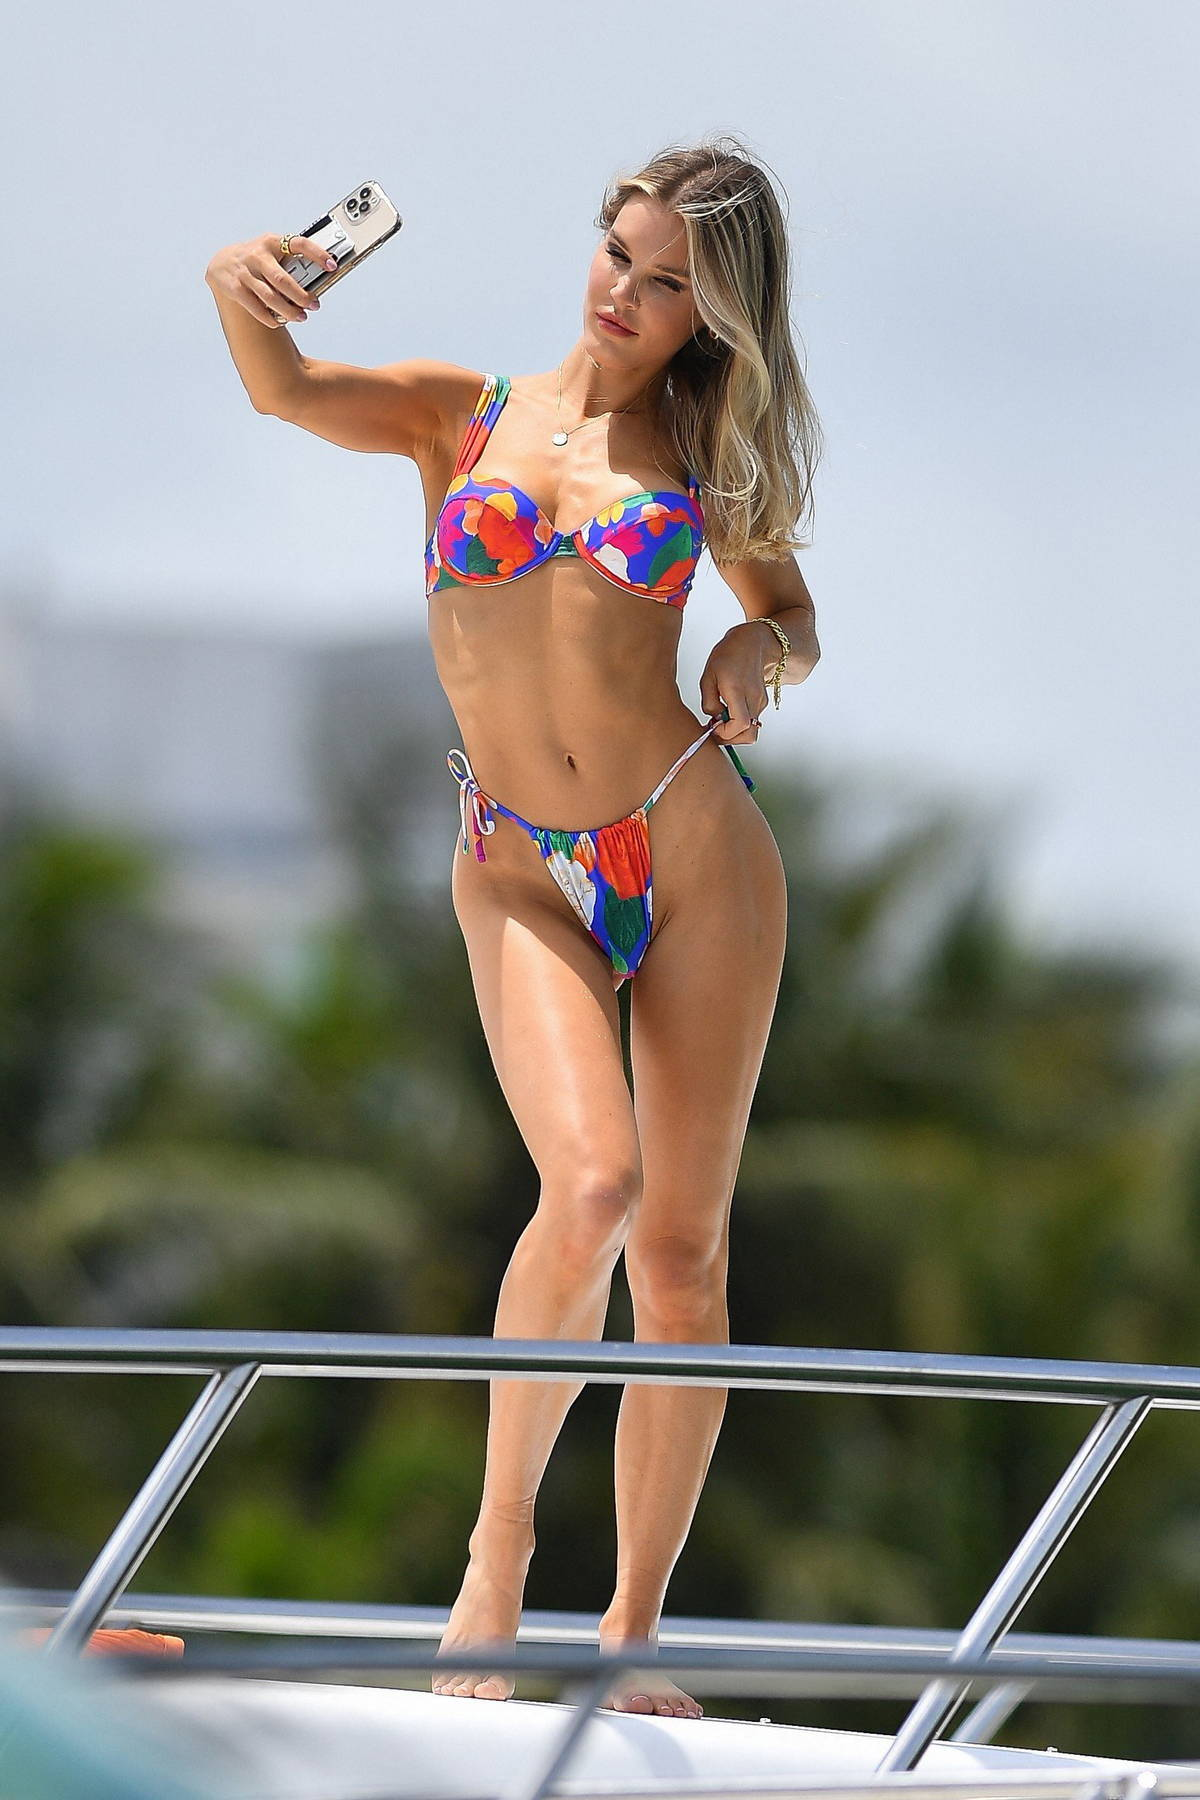 Joy Corrigan stuns in a colorful bikini while enjoying a day with friends on a yacht in Miami Beach, Florida